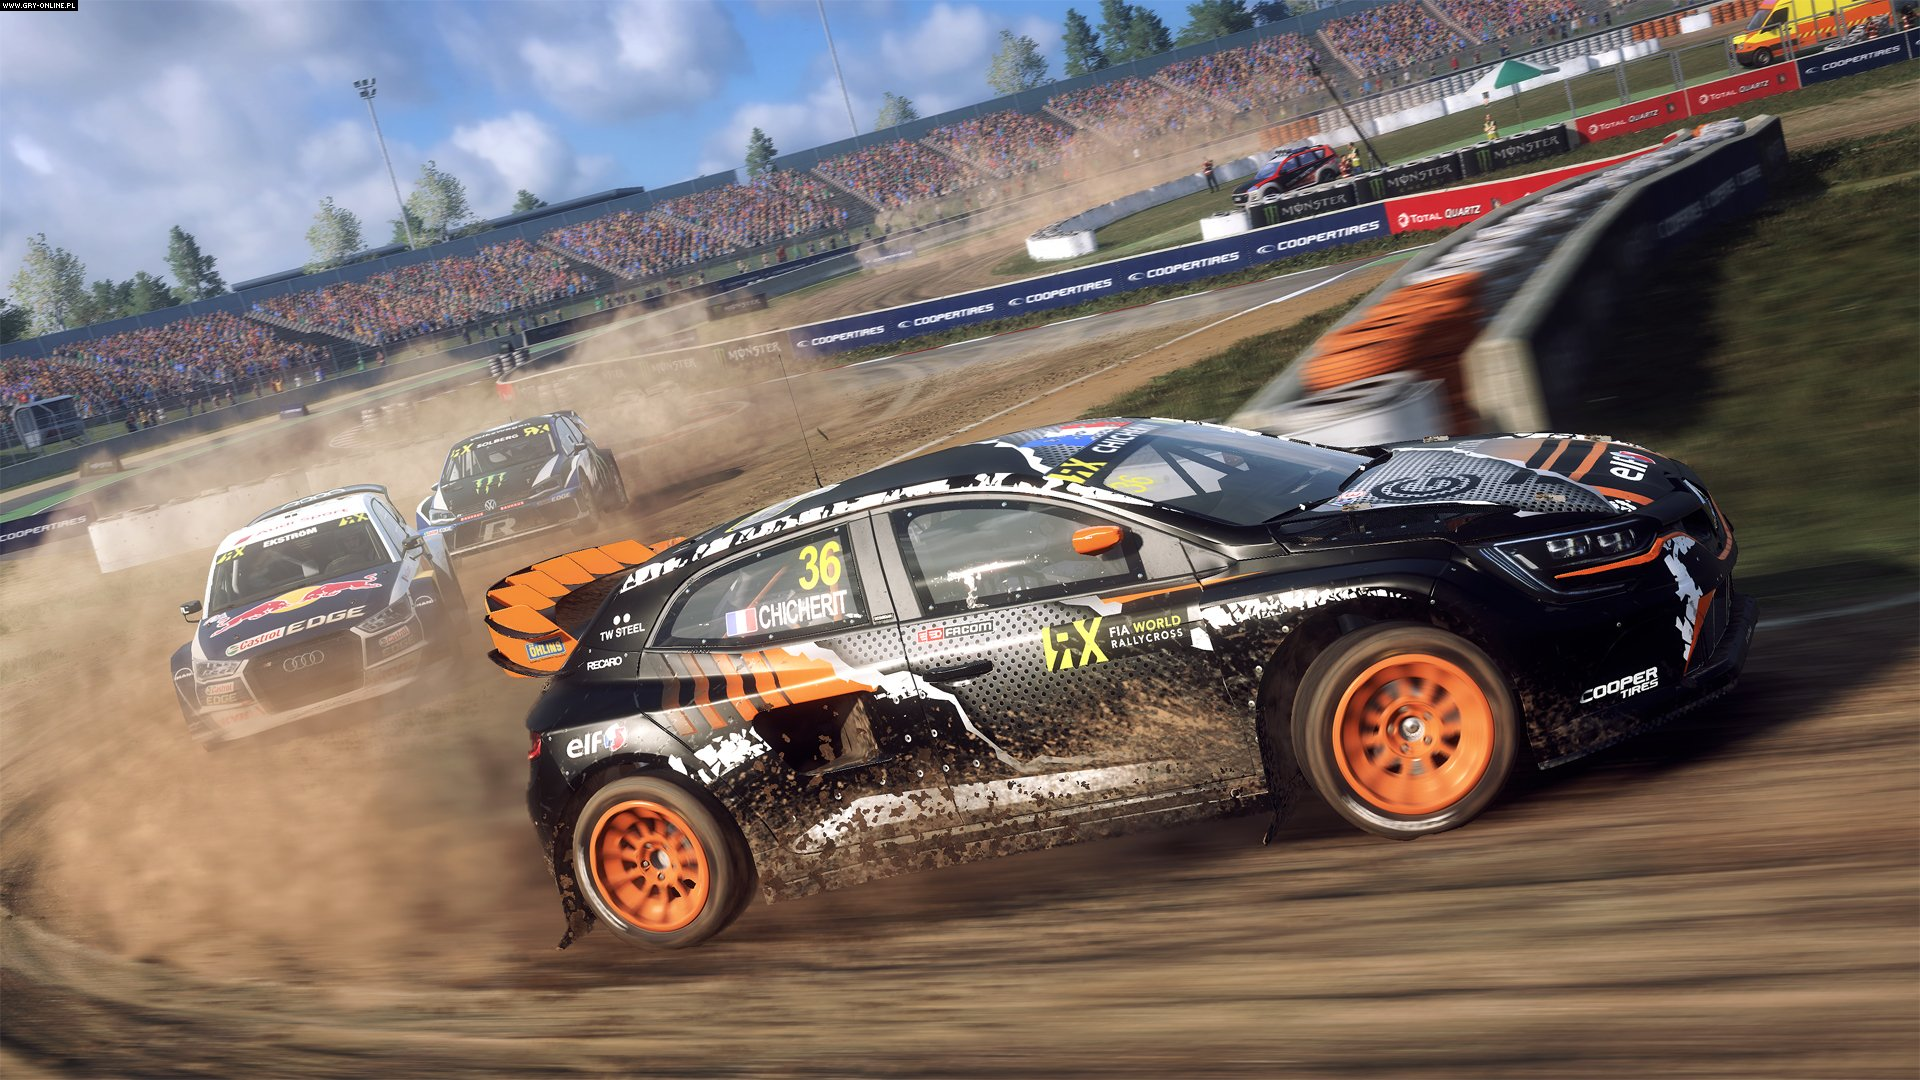 DiRT Rally 2.0 PC, PS4, XONE Games Image 9/49, Codemasters Software